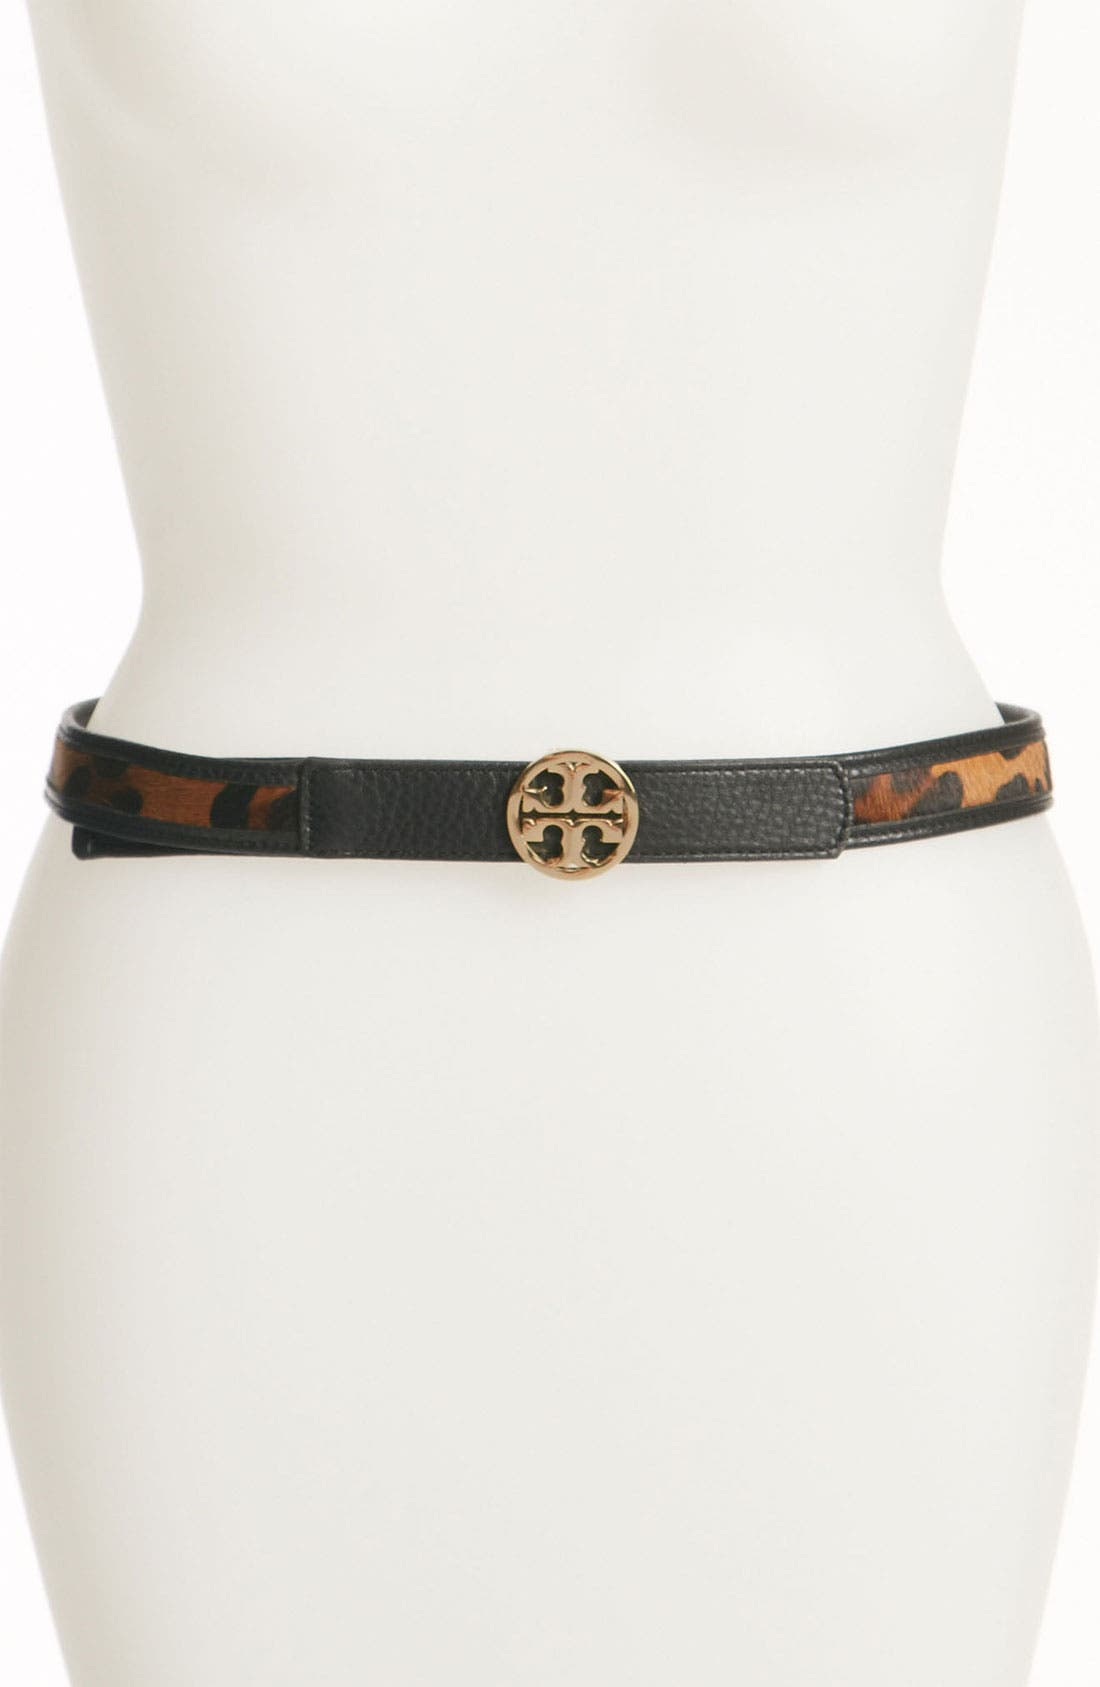 Alternate Image 1 Selected - Tory Burch Reversible Belt